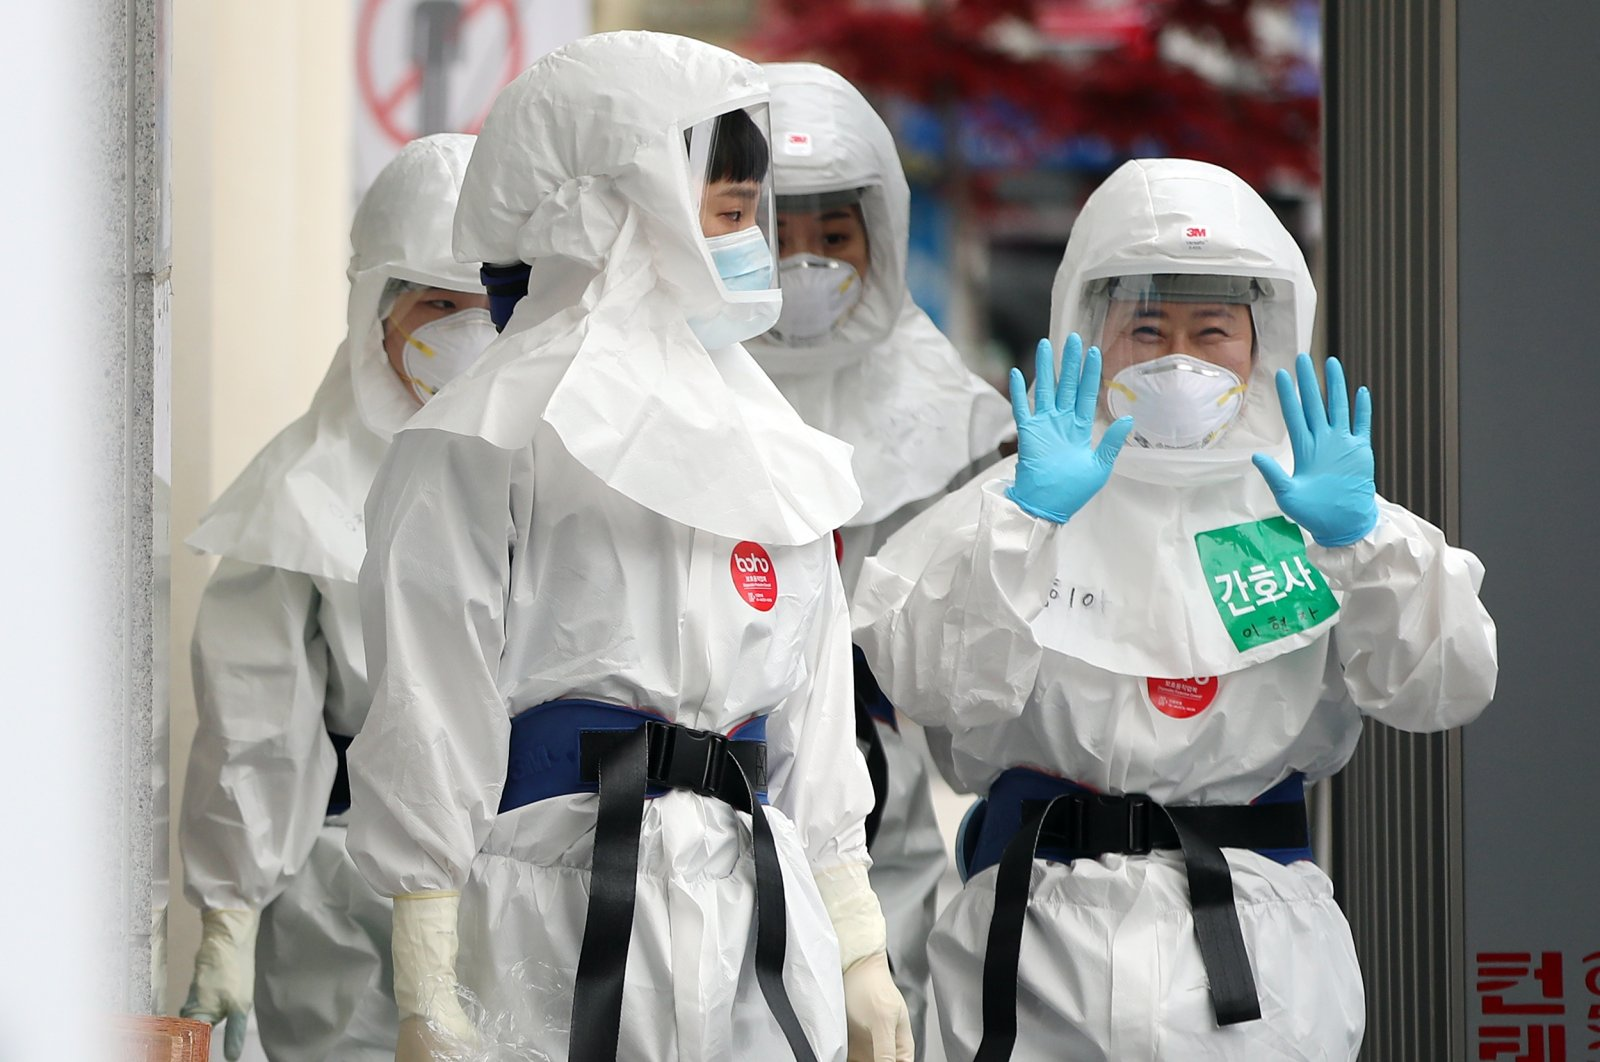 Medical workers prepare to start their shift caring for patients with the coronavirus at Dongsan Hospital in the southeastern city of Daegu, South Korea, April 19, 2020. (Reuters Photo)